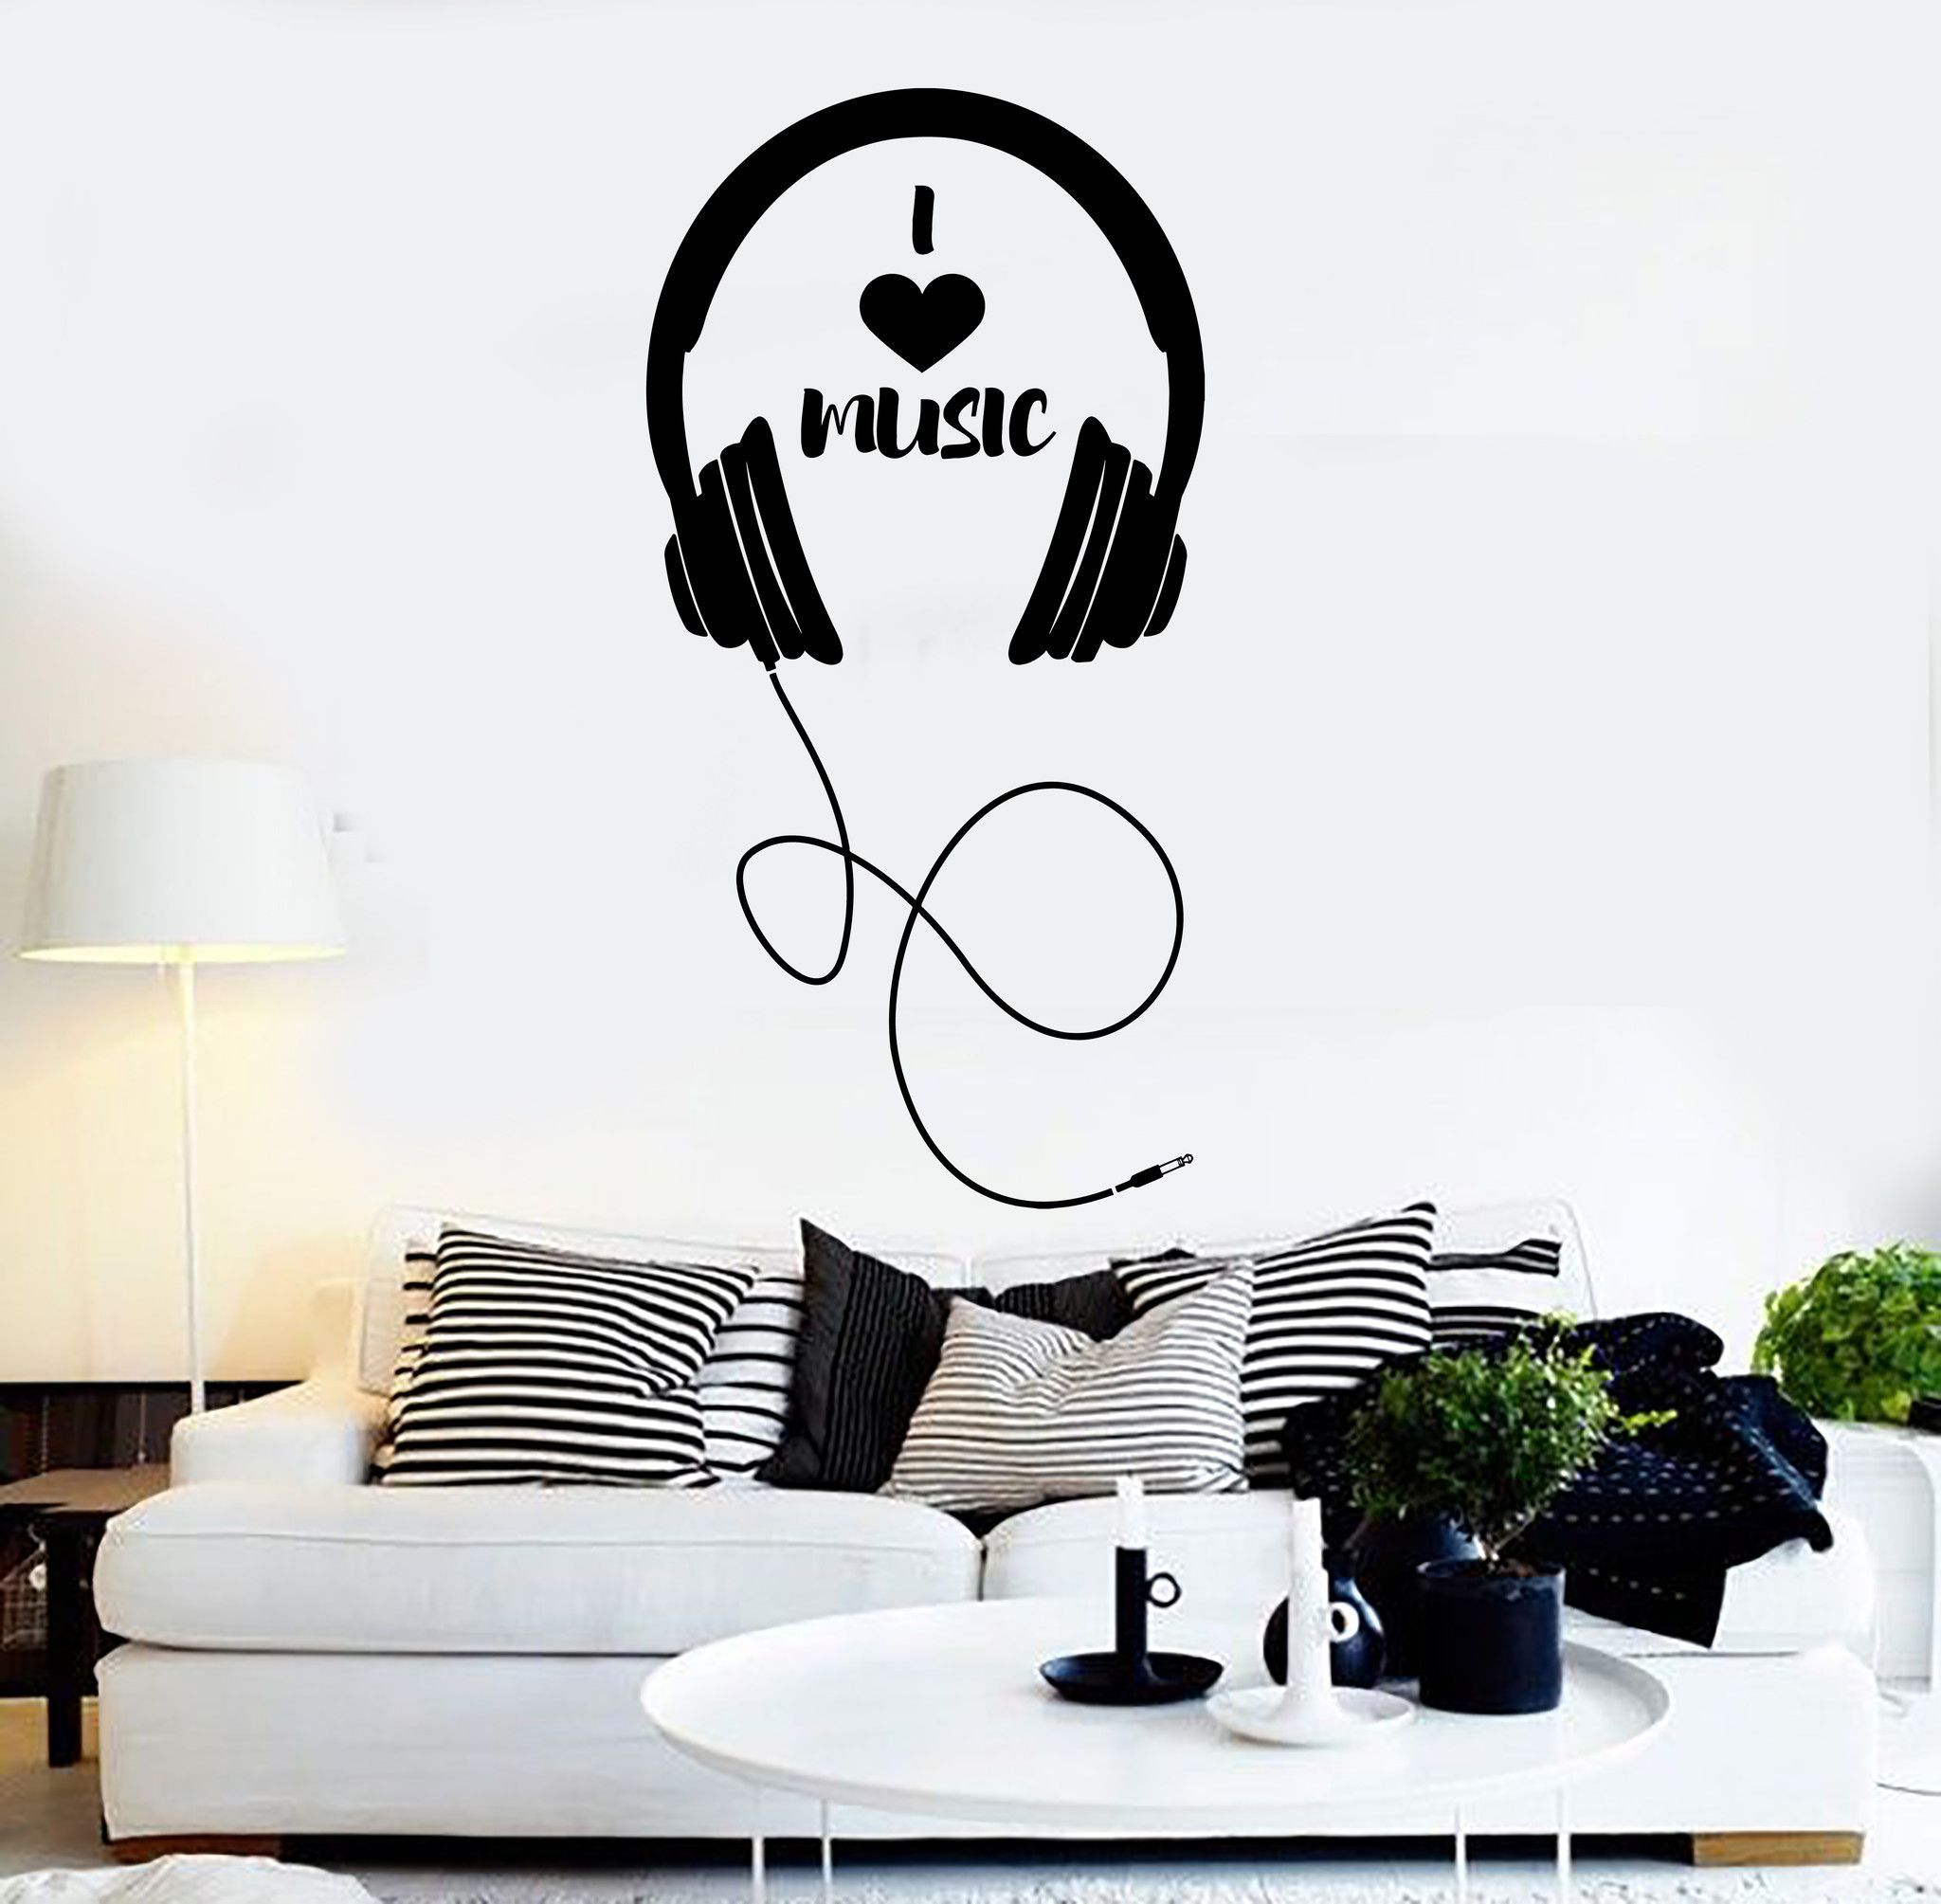 18 Easy Budget Decorating Ideas That Won T Break The Bank: Pin On Escola E Música